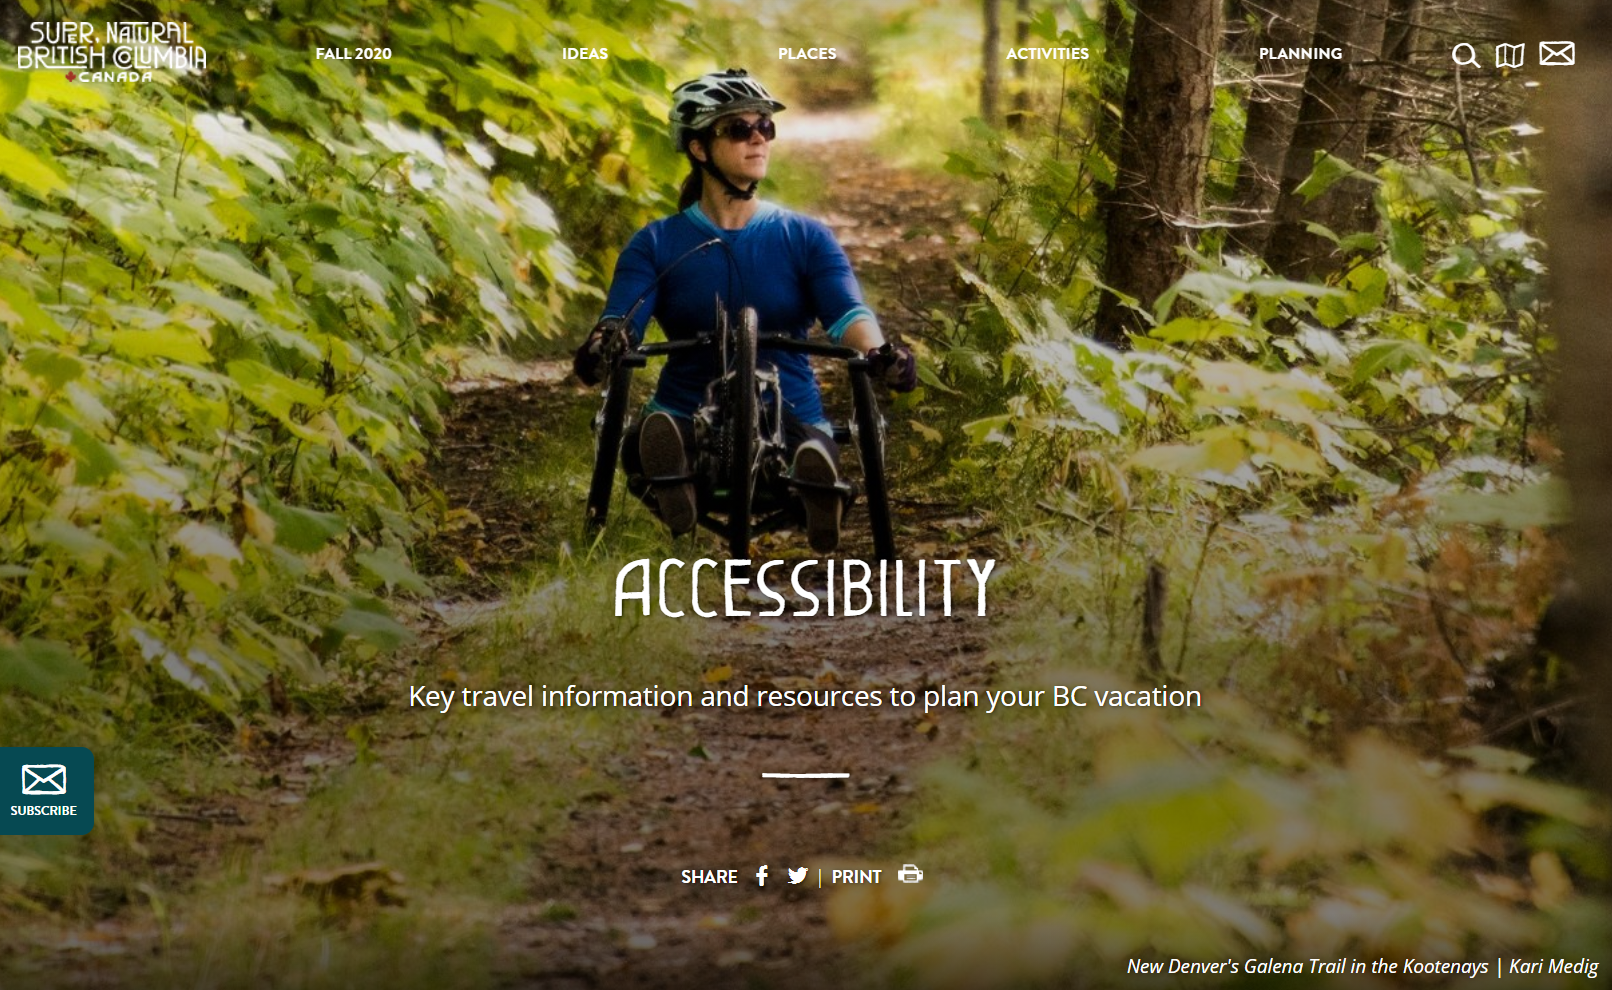 Accessible Website Recognition for HelloBC.com